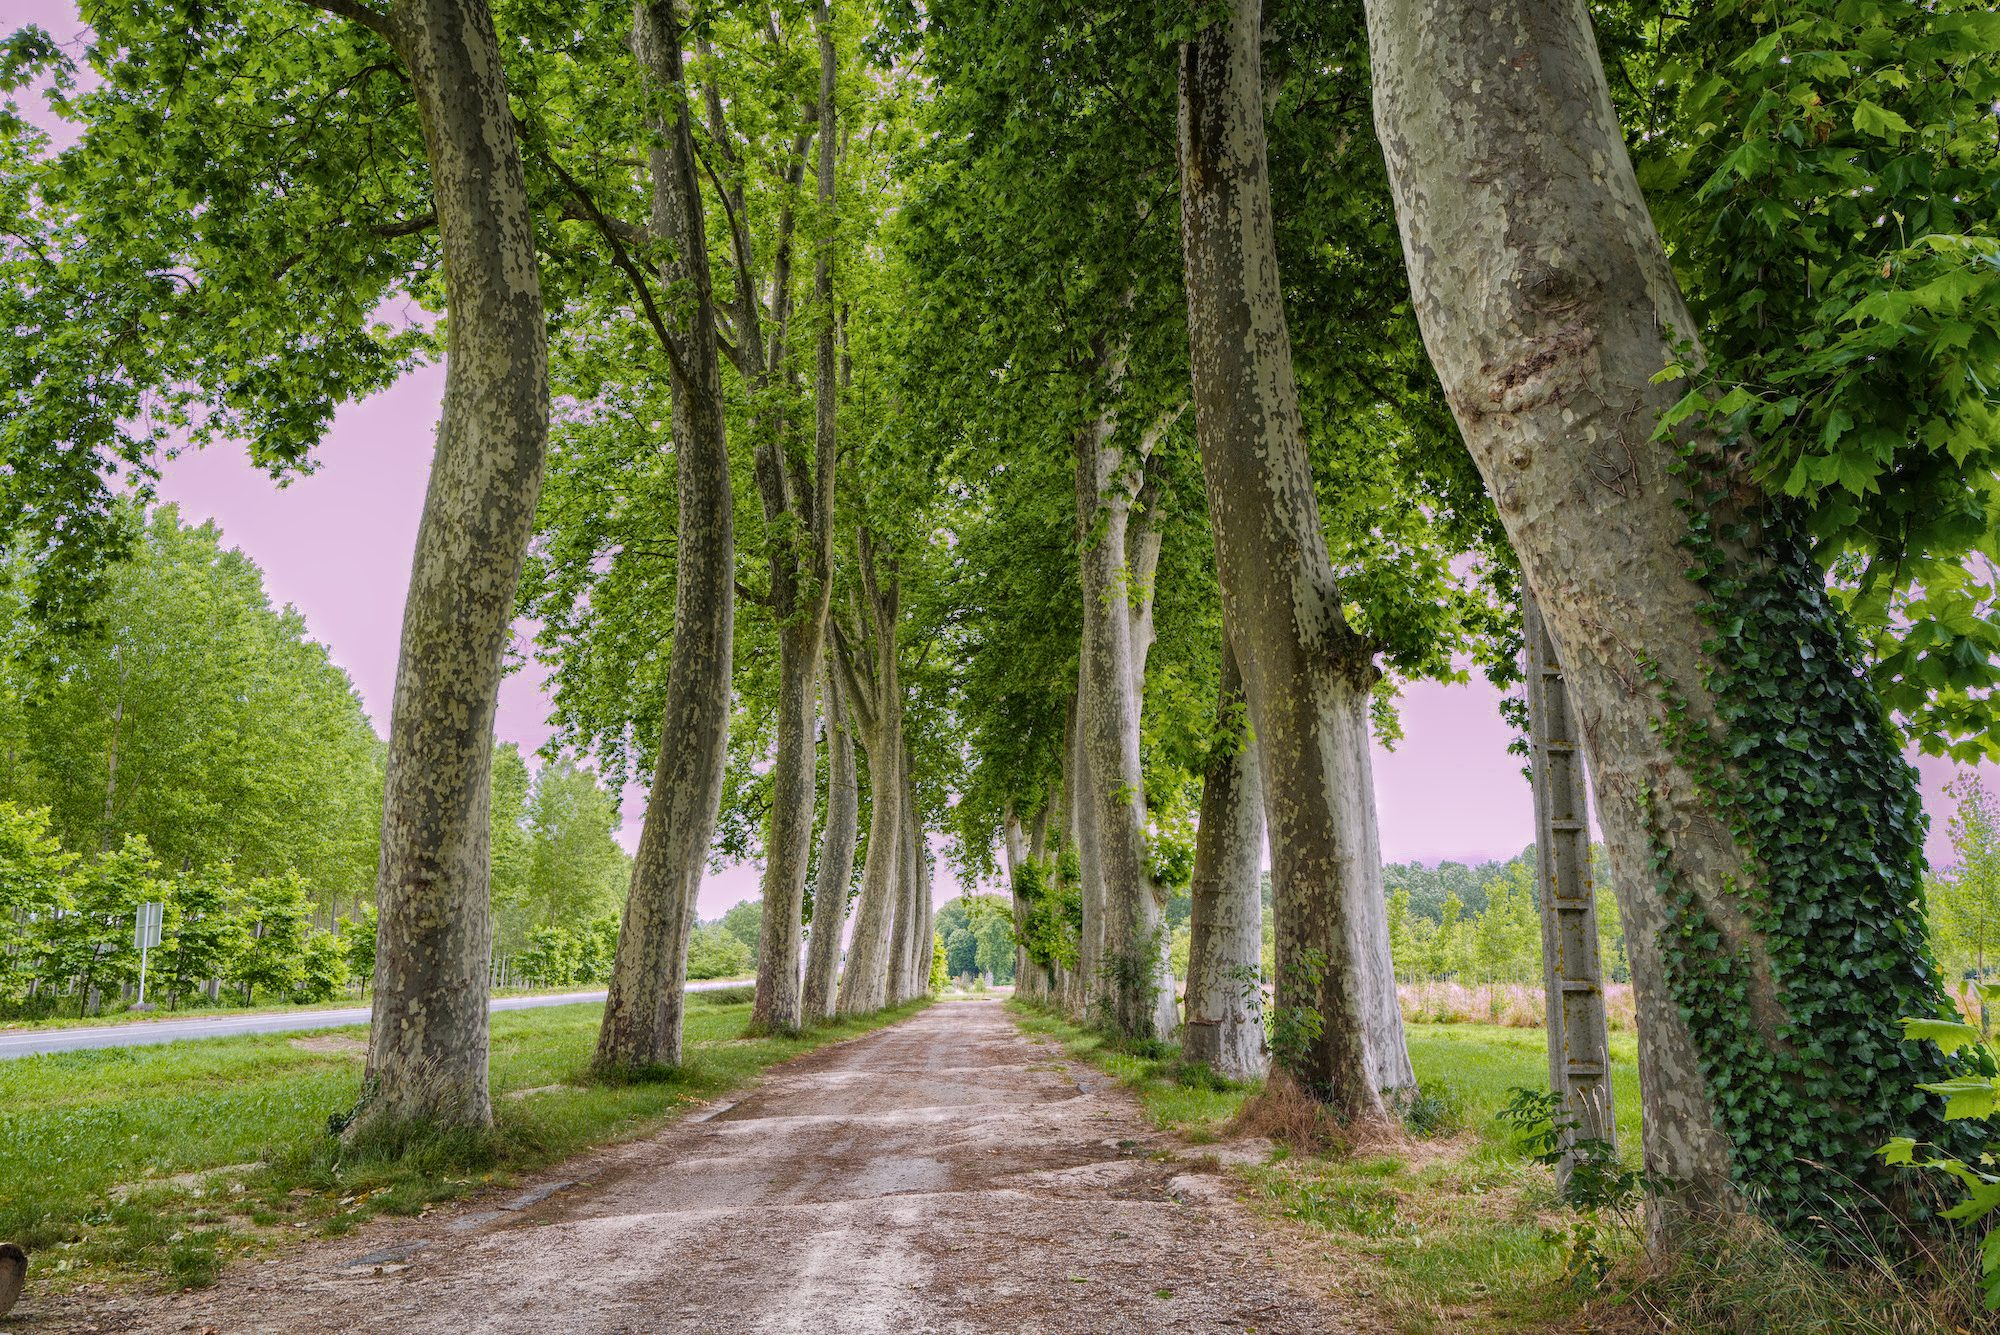 Verdun sur Garonne avenue of trees to river